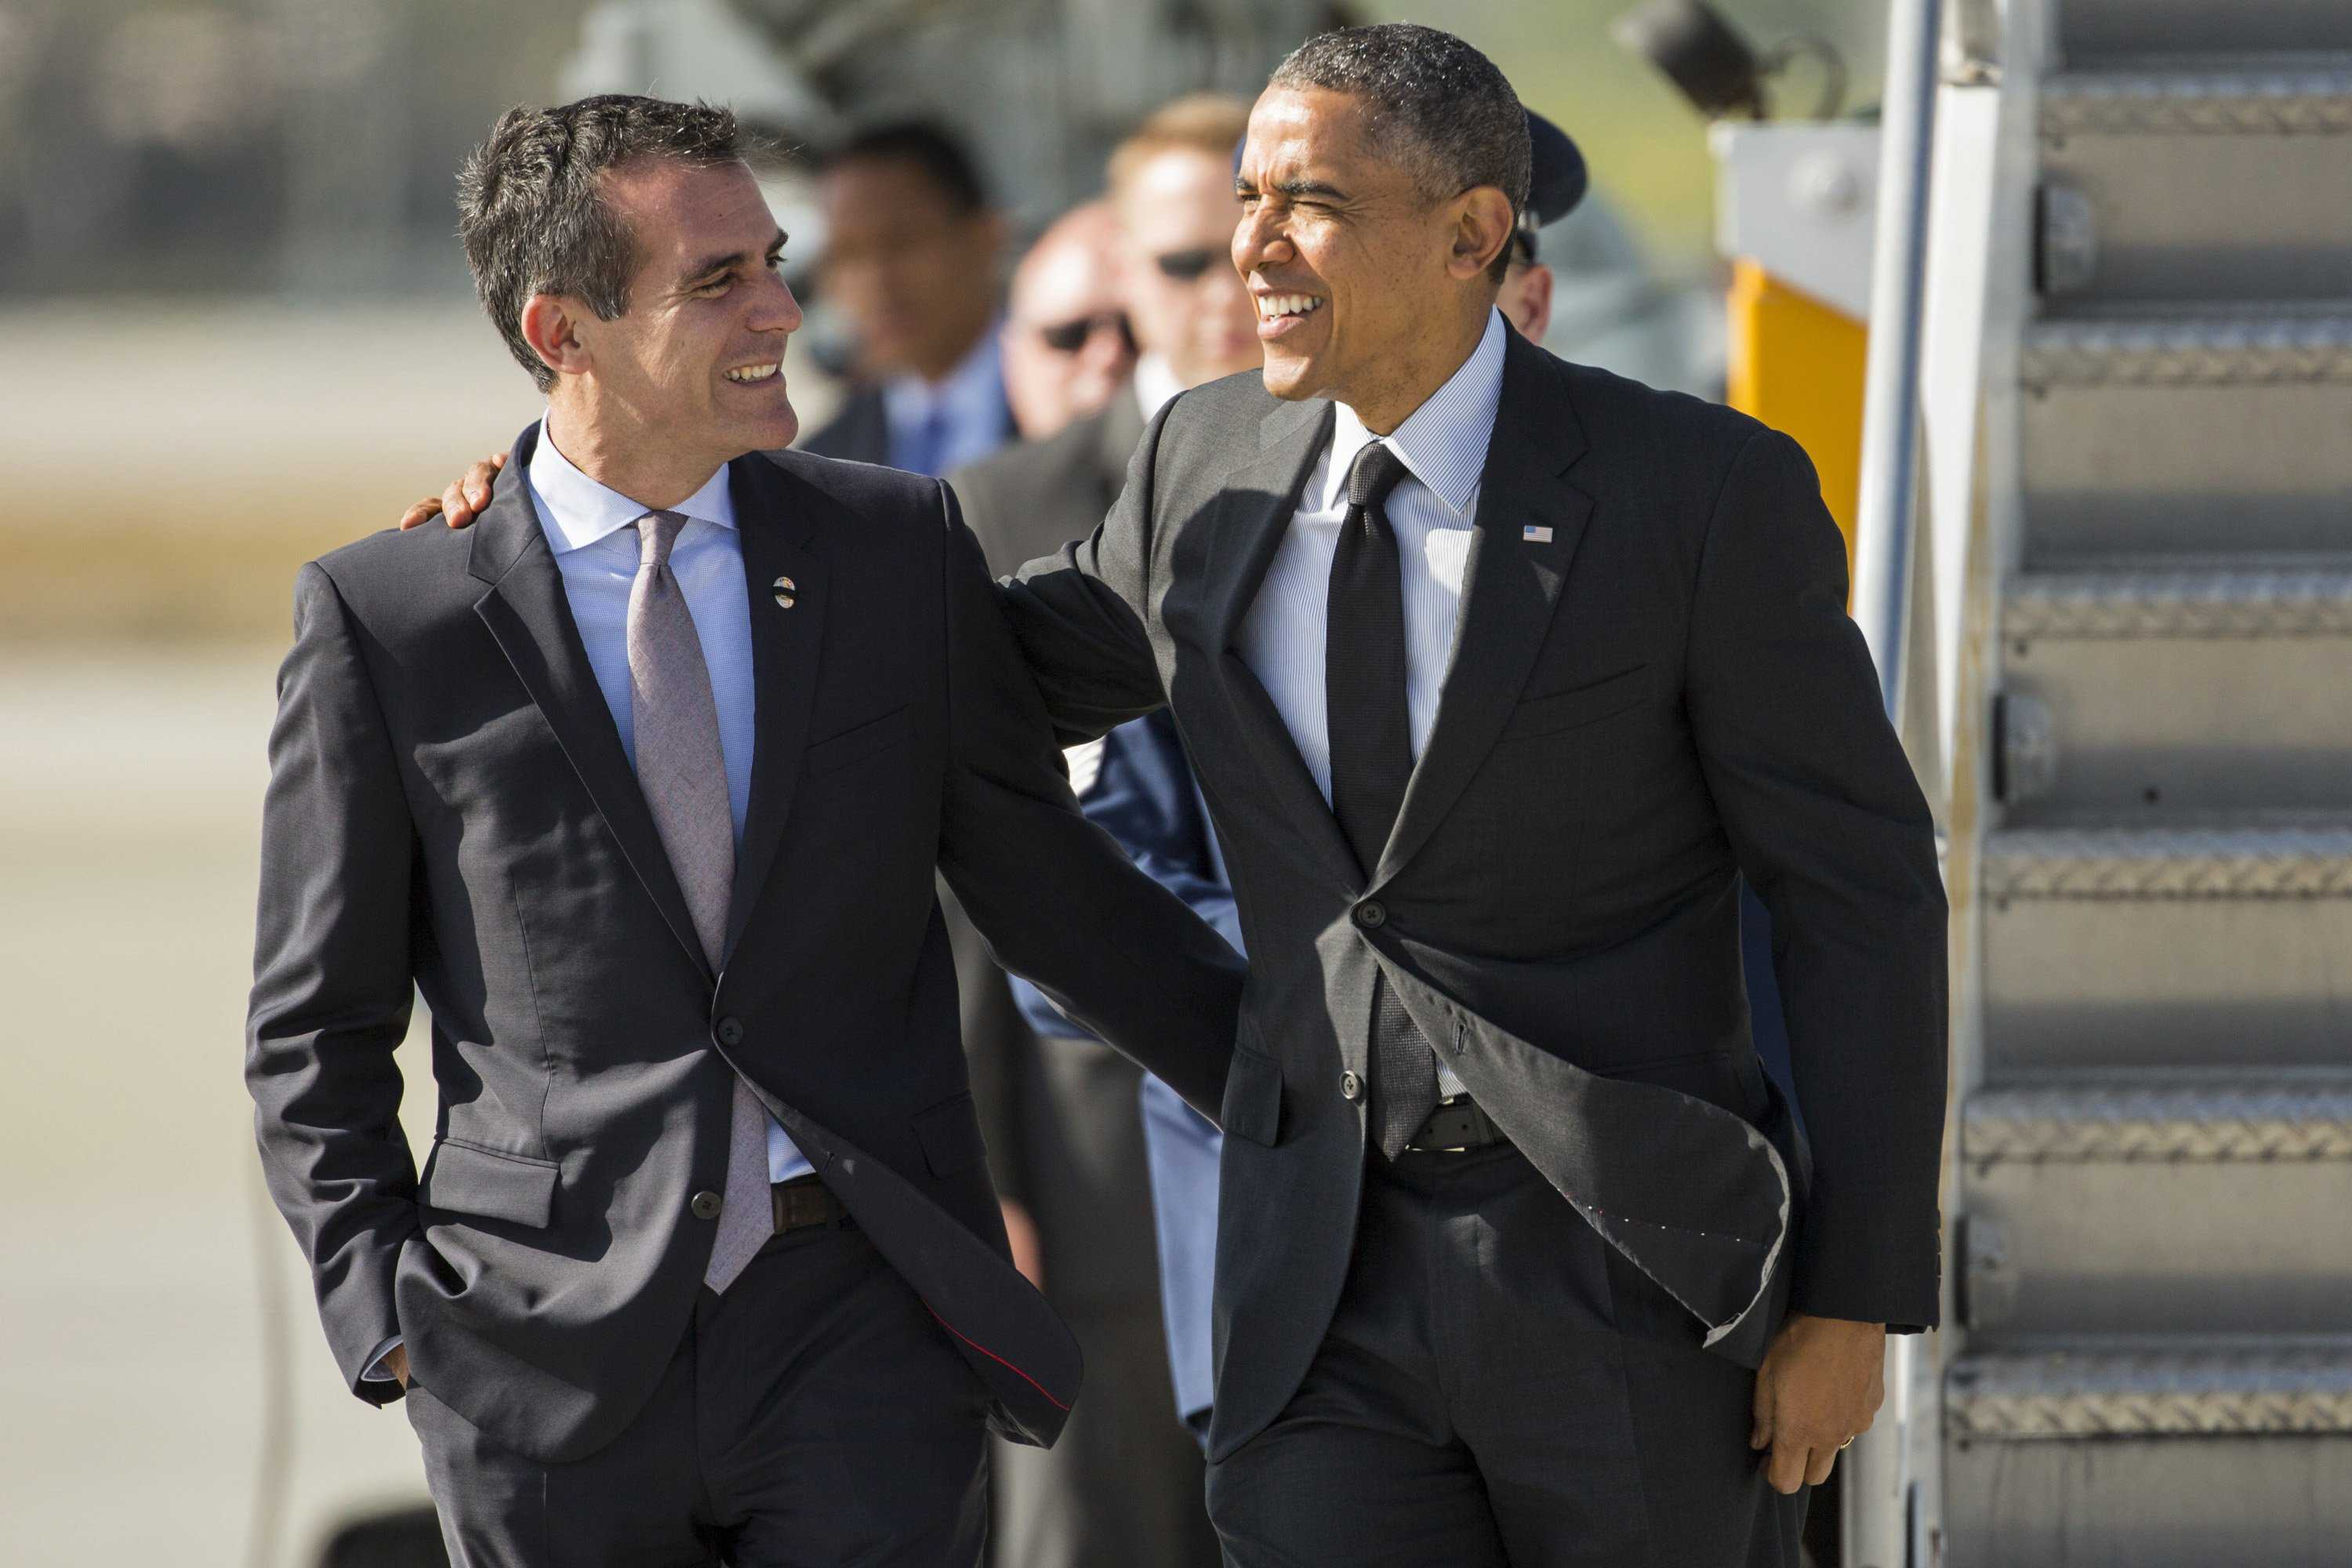 President Barack Obama greets Los Angeles Mayor Eric Garcetti at LAX on Wednesday, May 7, 2014, in Los Angeles. (Jay L. Clendenin/Los Angeles Times/MCT)